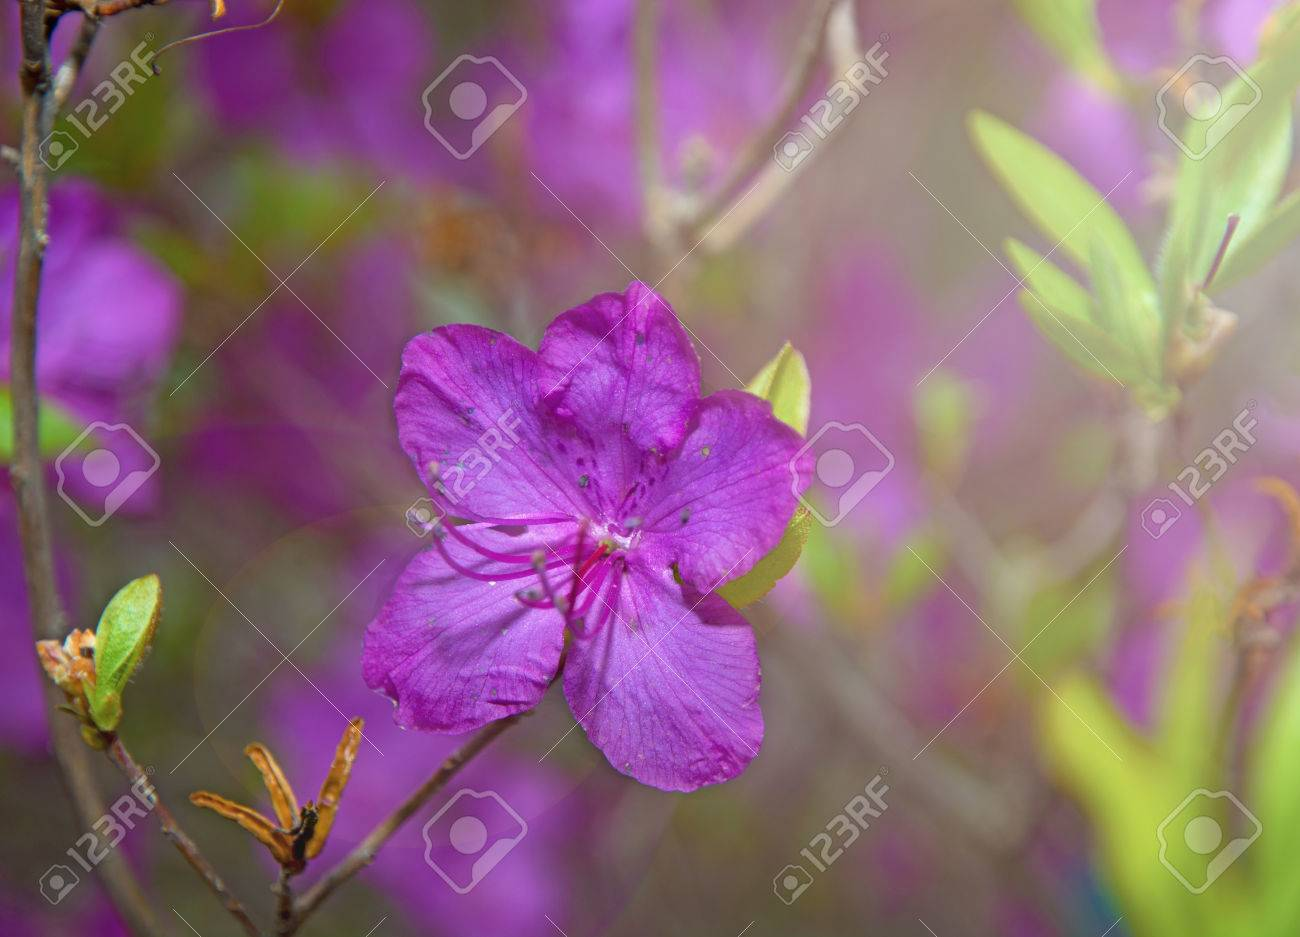 Ledum the entire hive is littered with flowers of bright purple ledum the entire hive is littered with flowers of bright purple color very beautiful izmirmasajfo Choice Image